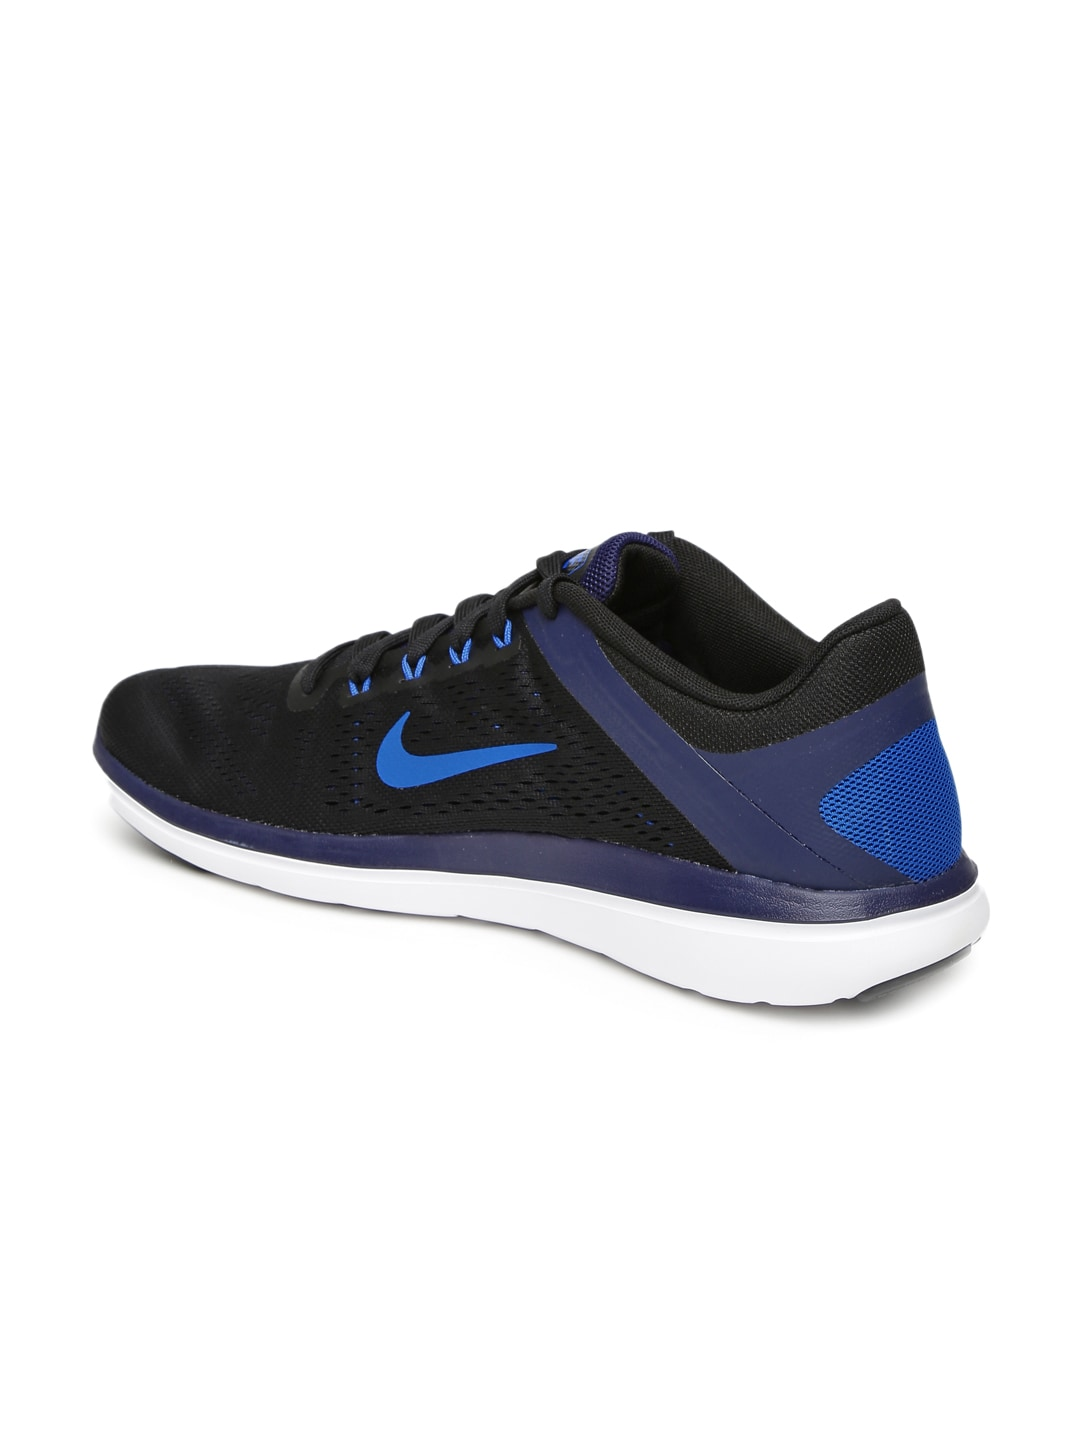 Best Site To Buy Shoes In India